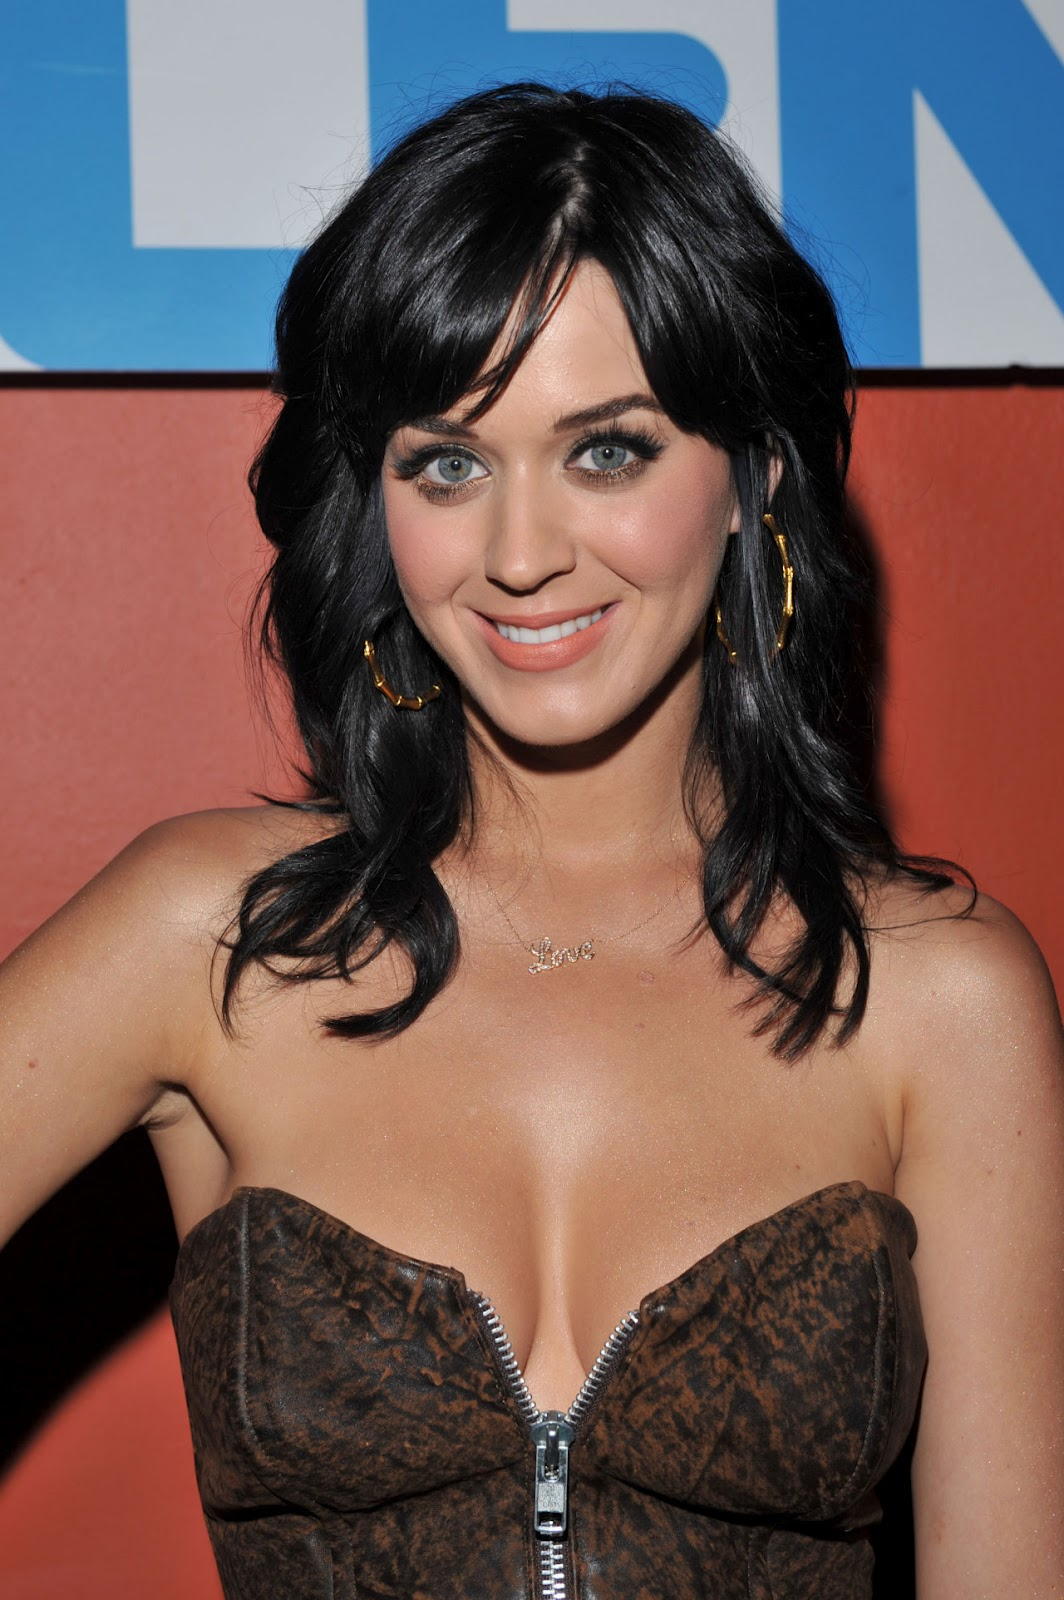 All Top Hollywood Celebrities: Katy Perry Pictures/Images/Photos